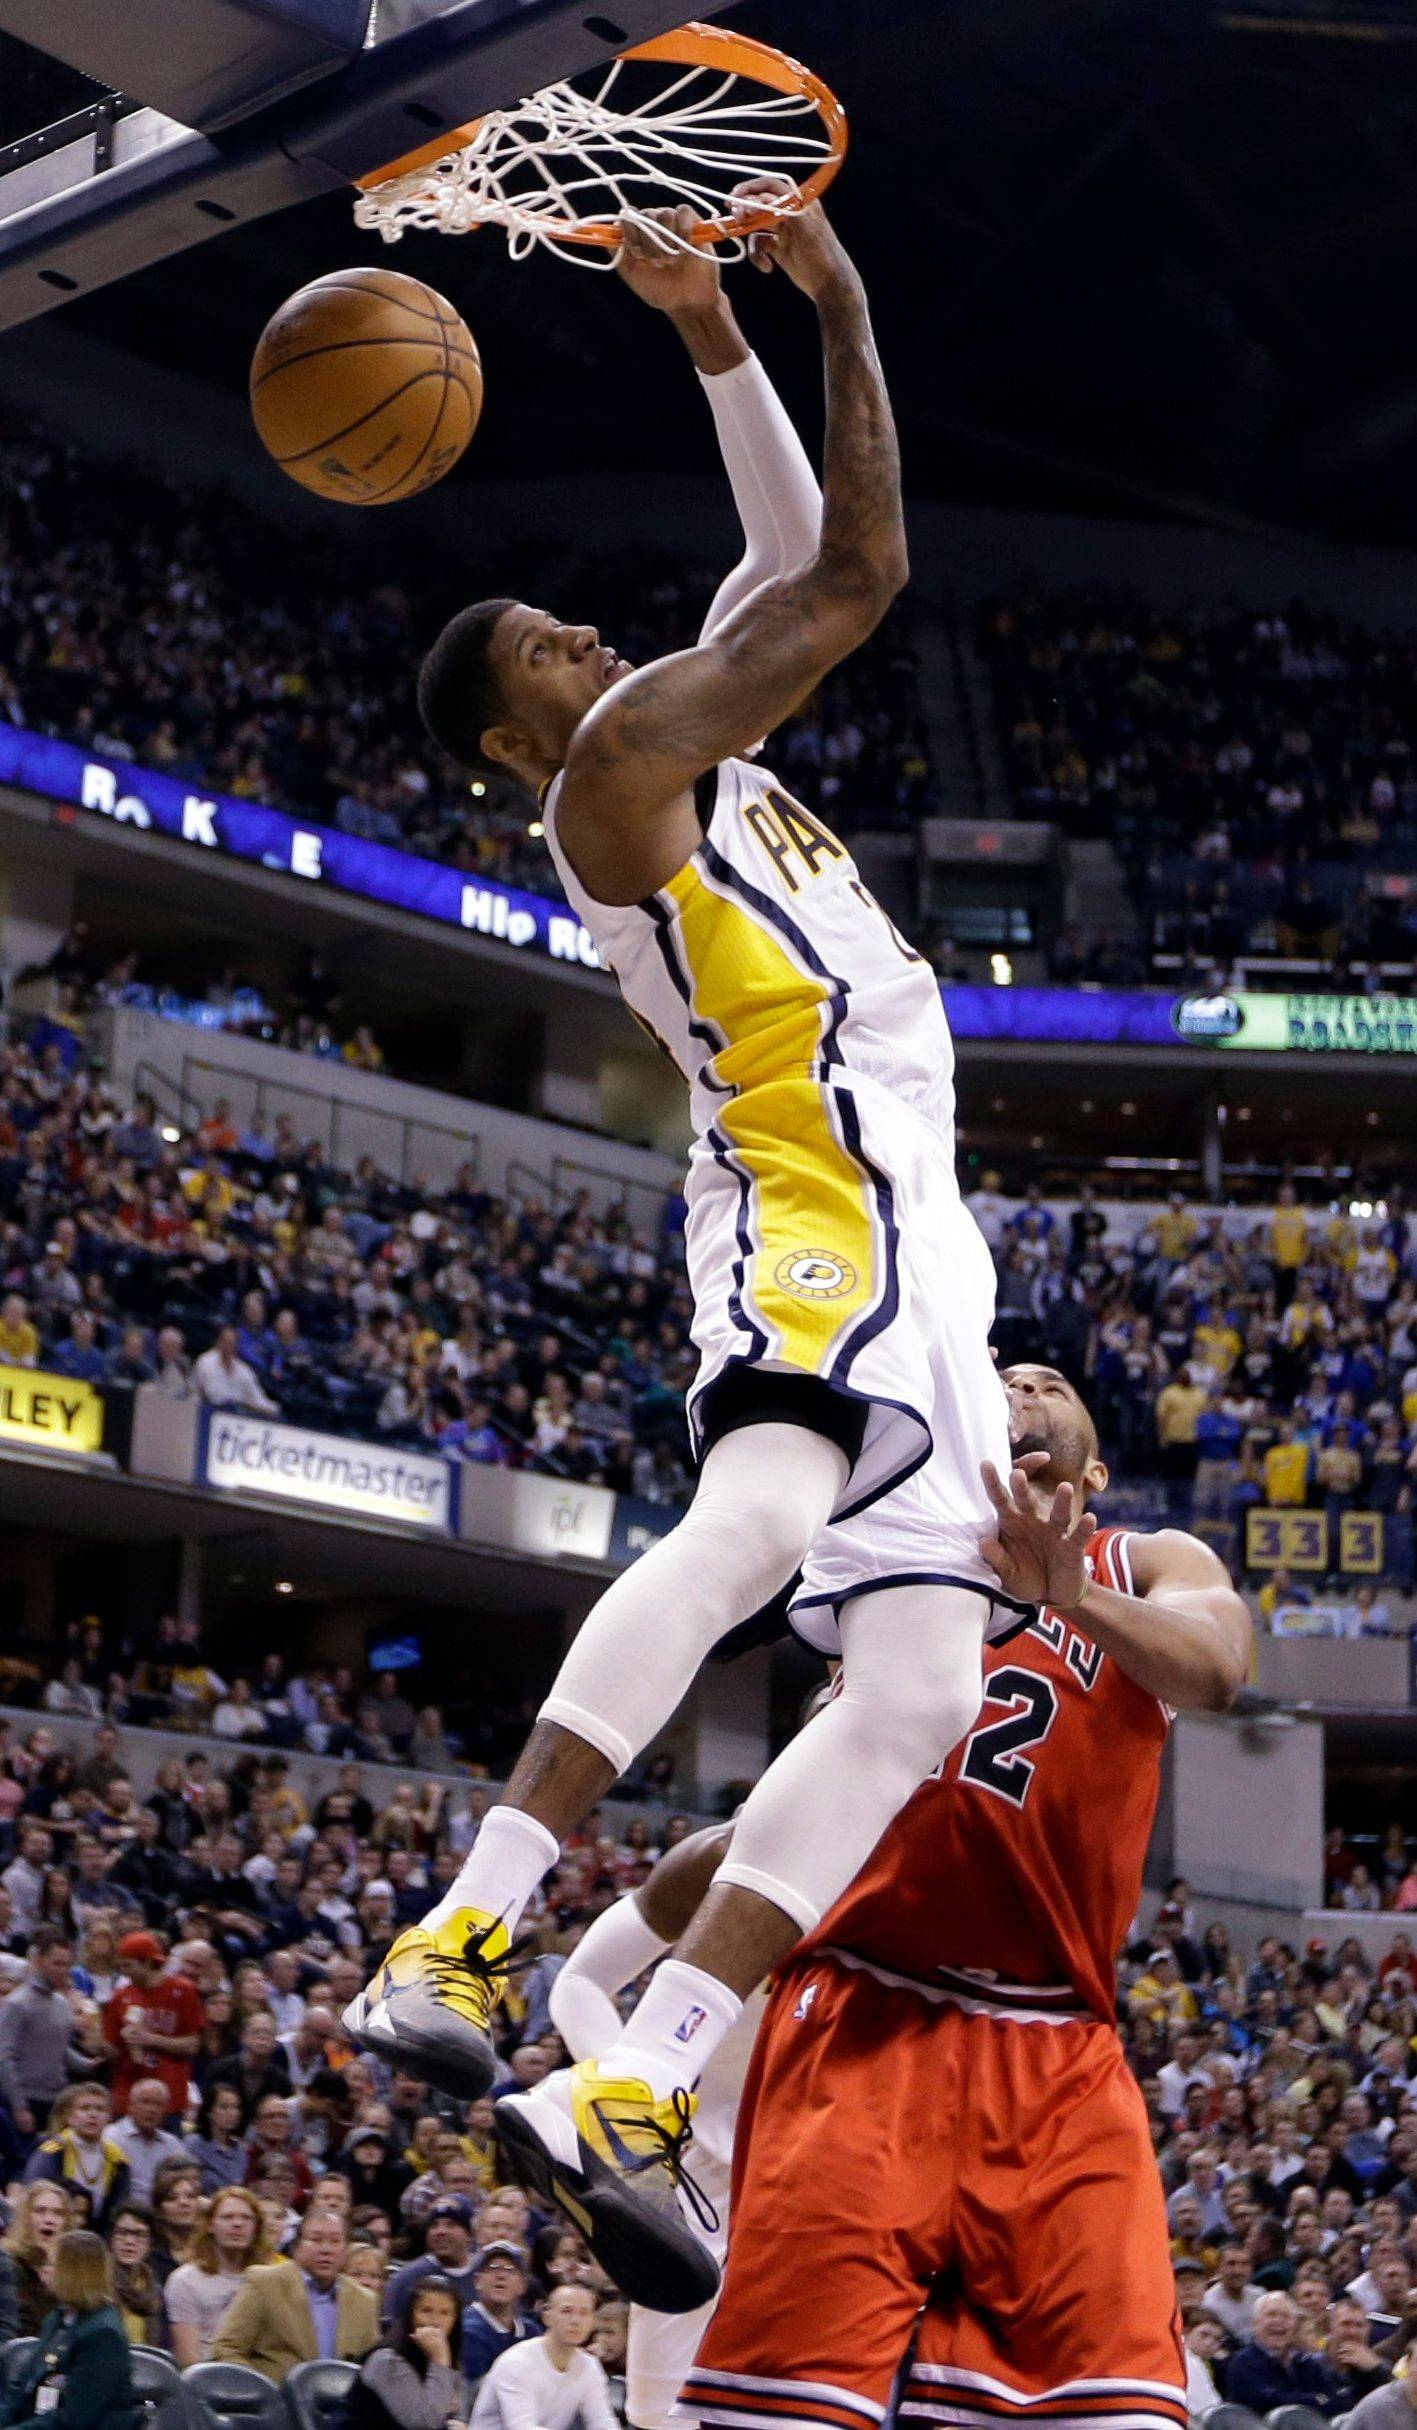 Paul George gets a reverse dunk over Taj Gibson during the Indiana's victory Monday. The Pacers' big flaw was lack of a legitimate scorer, but that problem has been erased with the emergence of George.